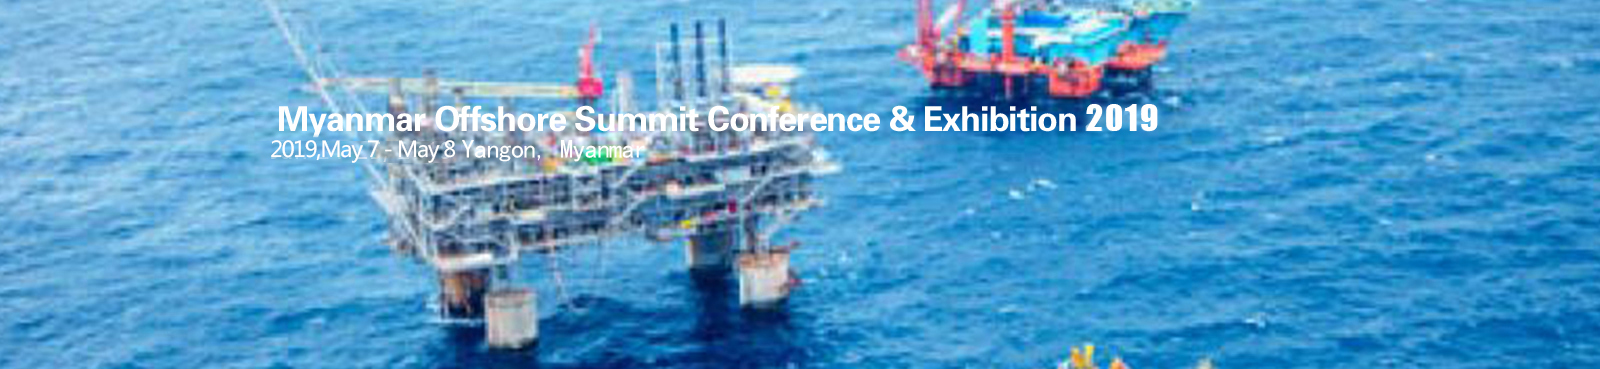 Myanmar Offshore Summit Conference & Exhibition 2019